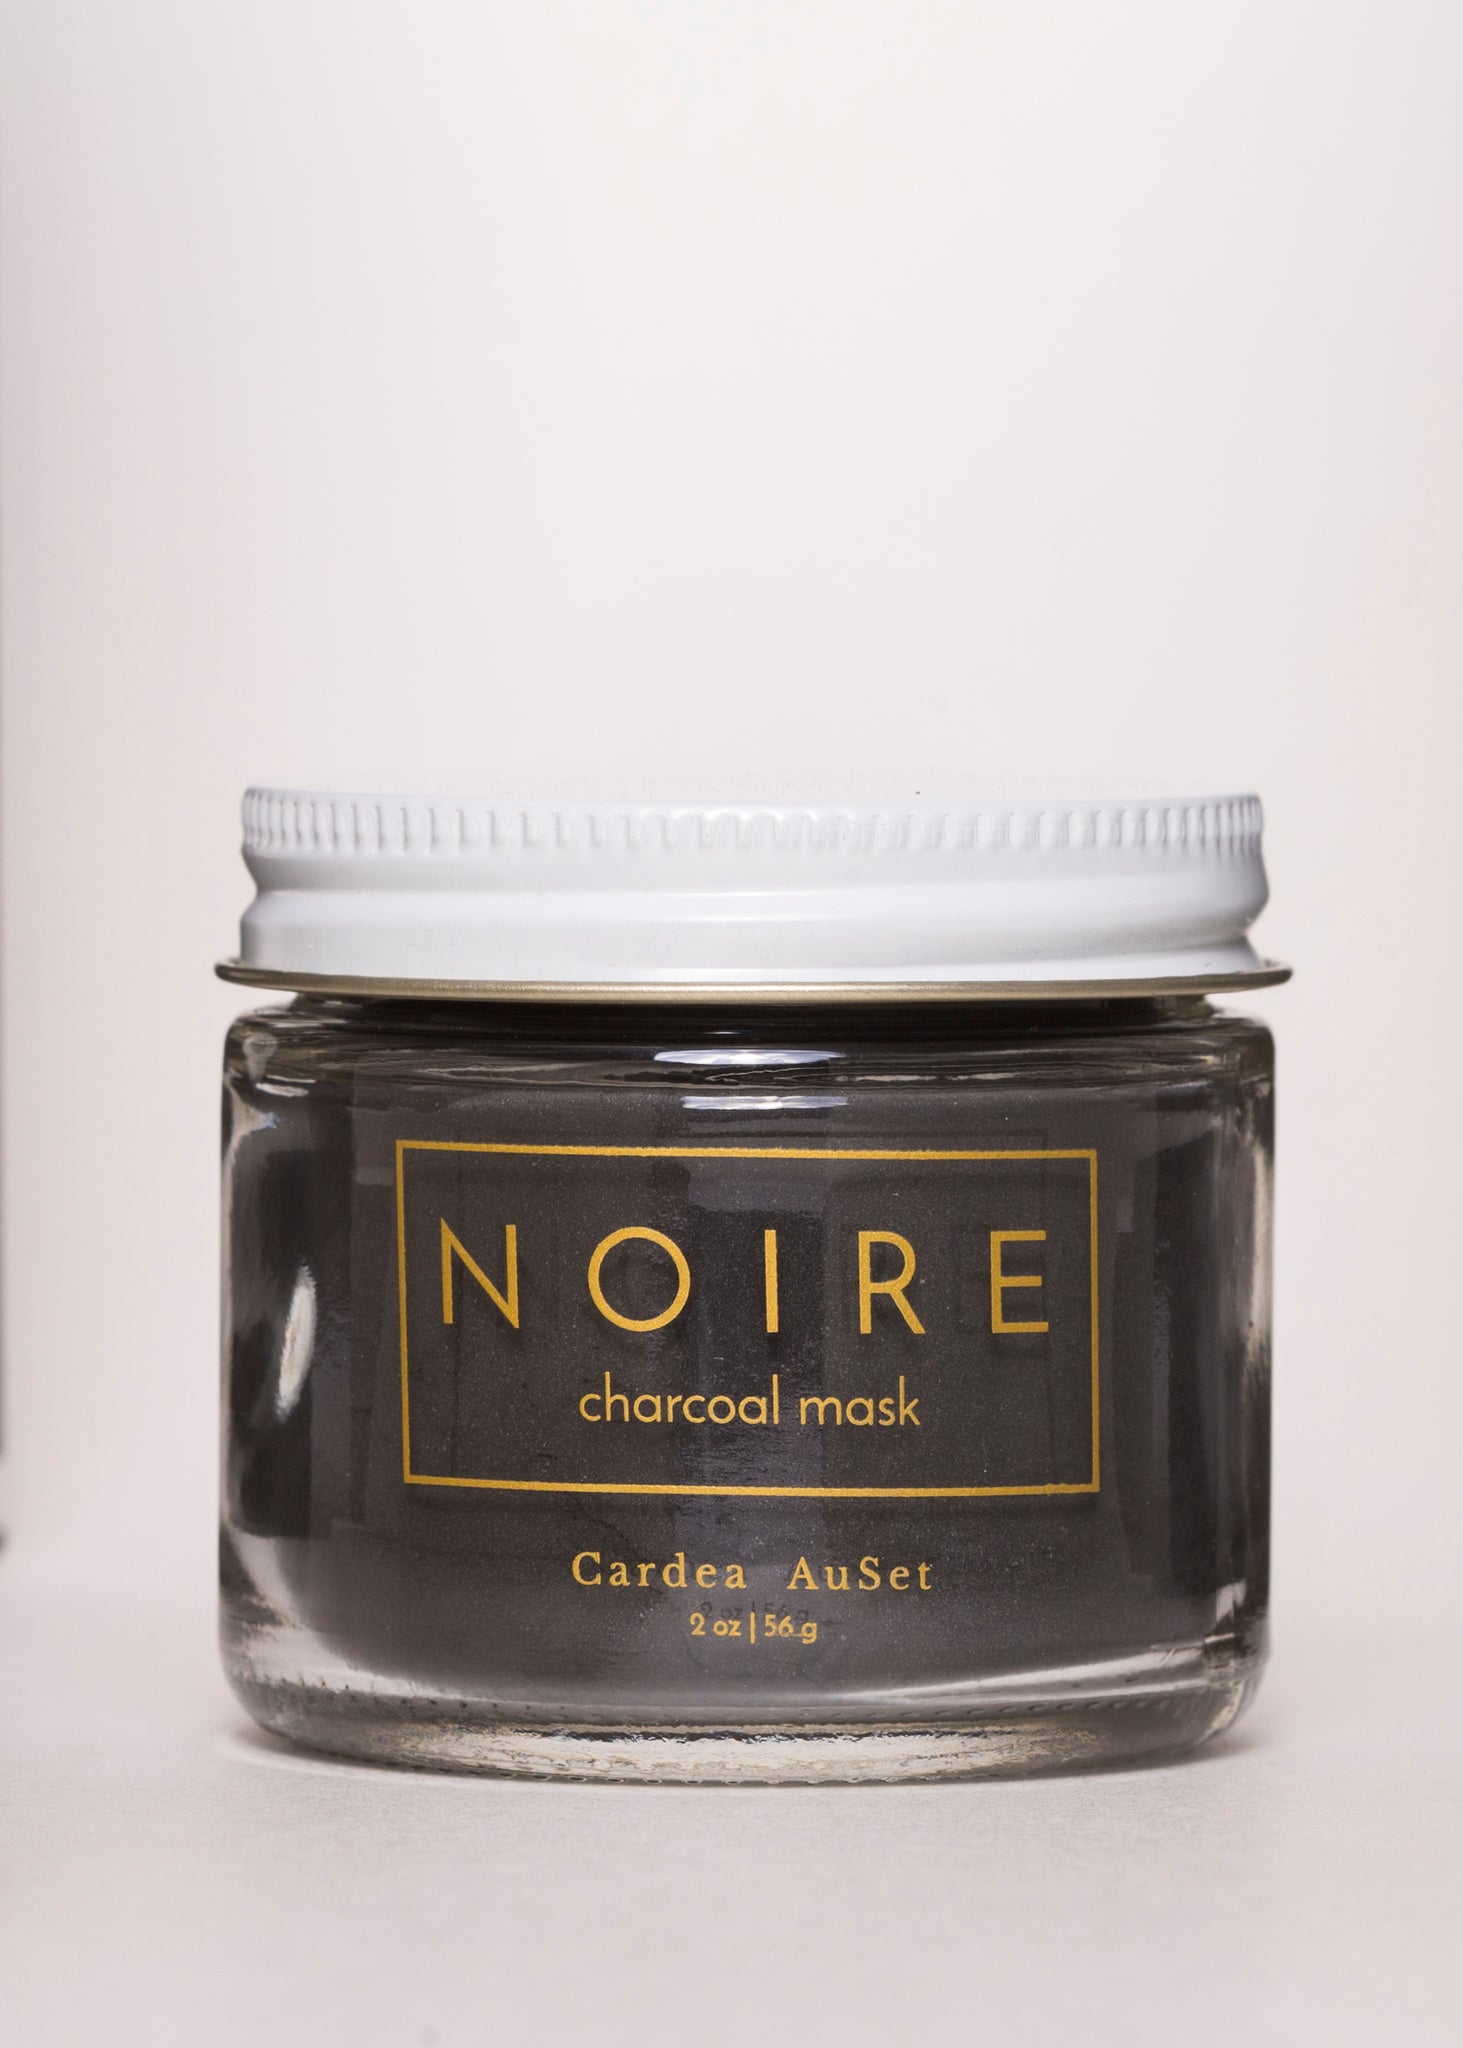 NOIRE Charcoal Mask - Cardea AuSet | Goodnight Beauty | mask, clay mask, natural beauty, vegan beauty, natural skin care, made in canada